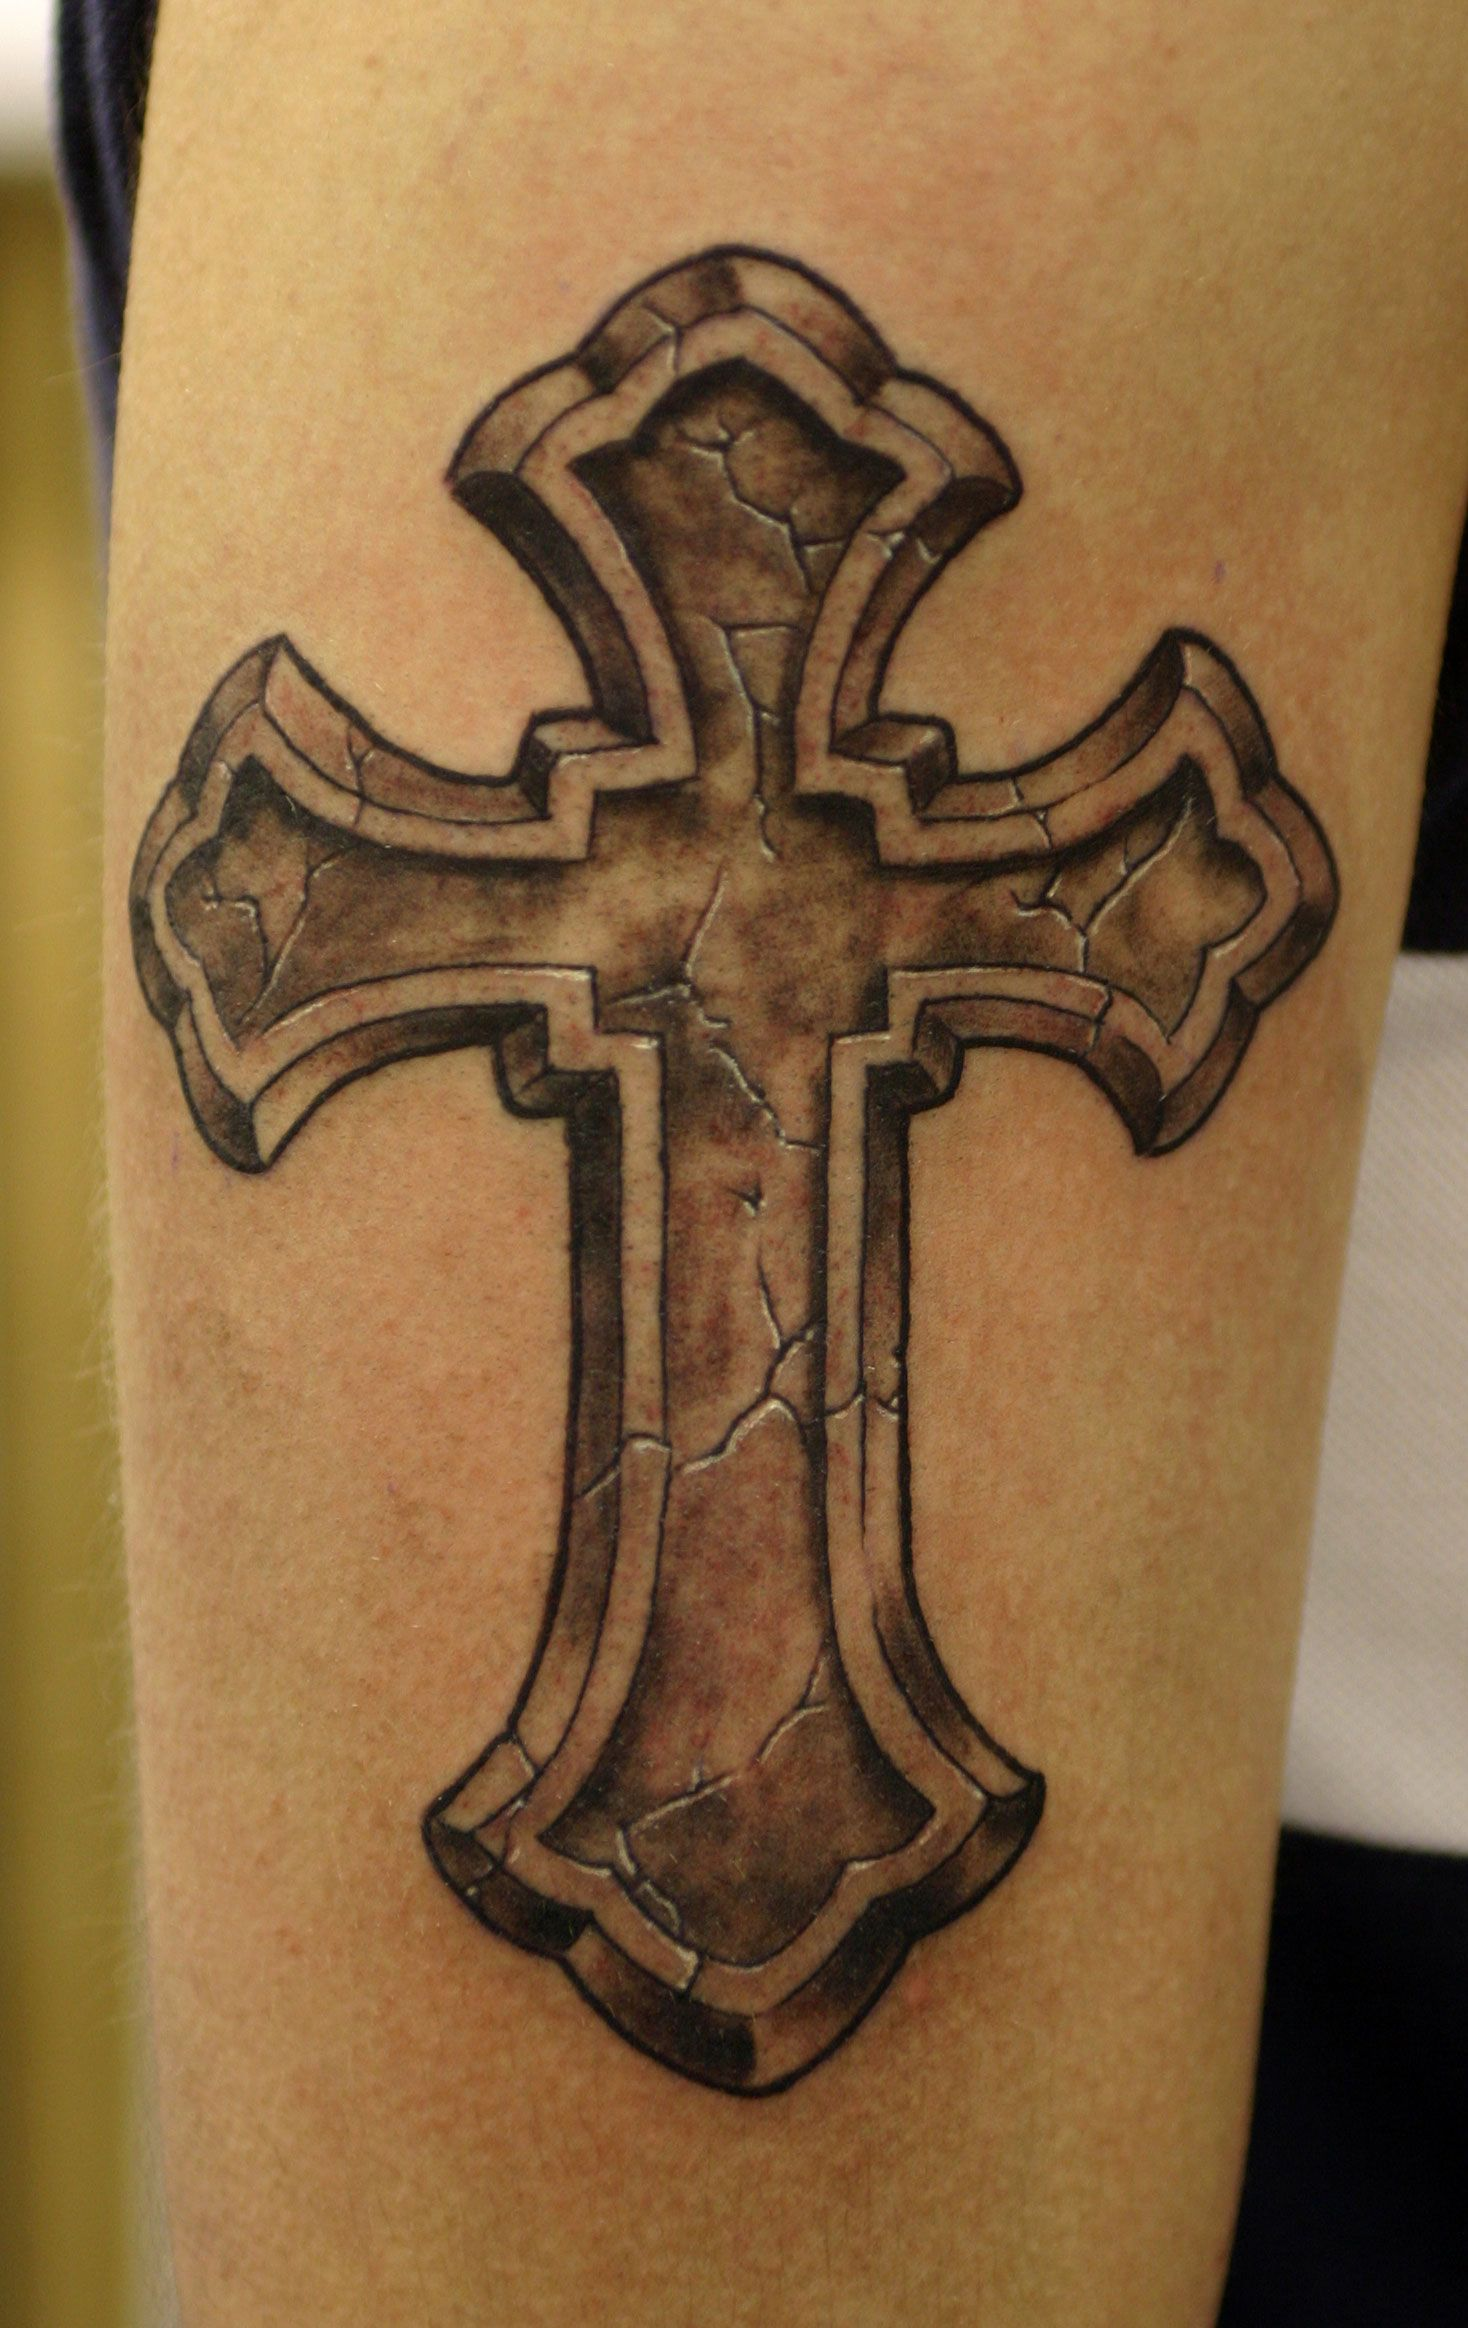 Iron eagle tattoo 25 brilliant cross tattoos for men - Unique Cross Tattoos Artwork By Many Very Talented Tattoo Artists From Around The World